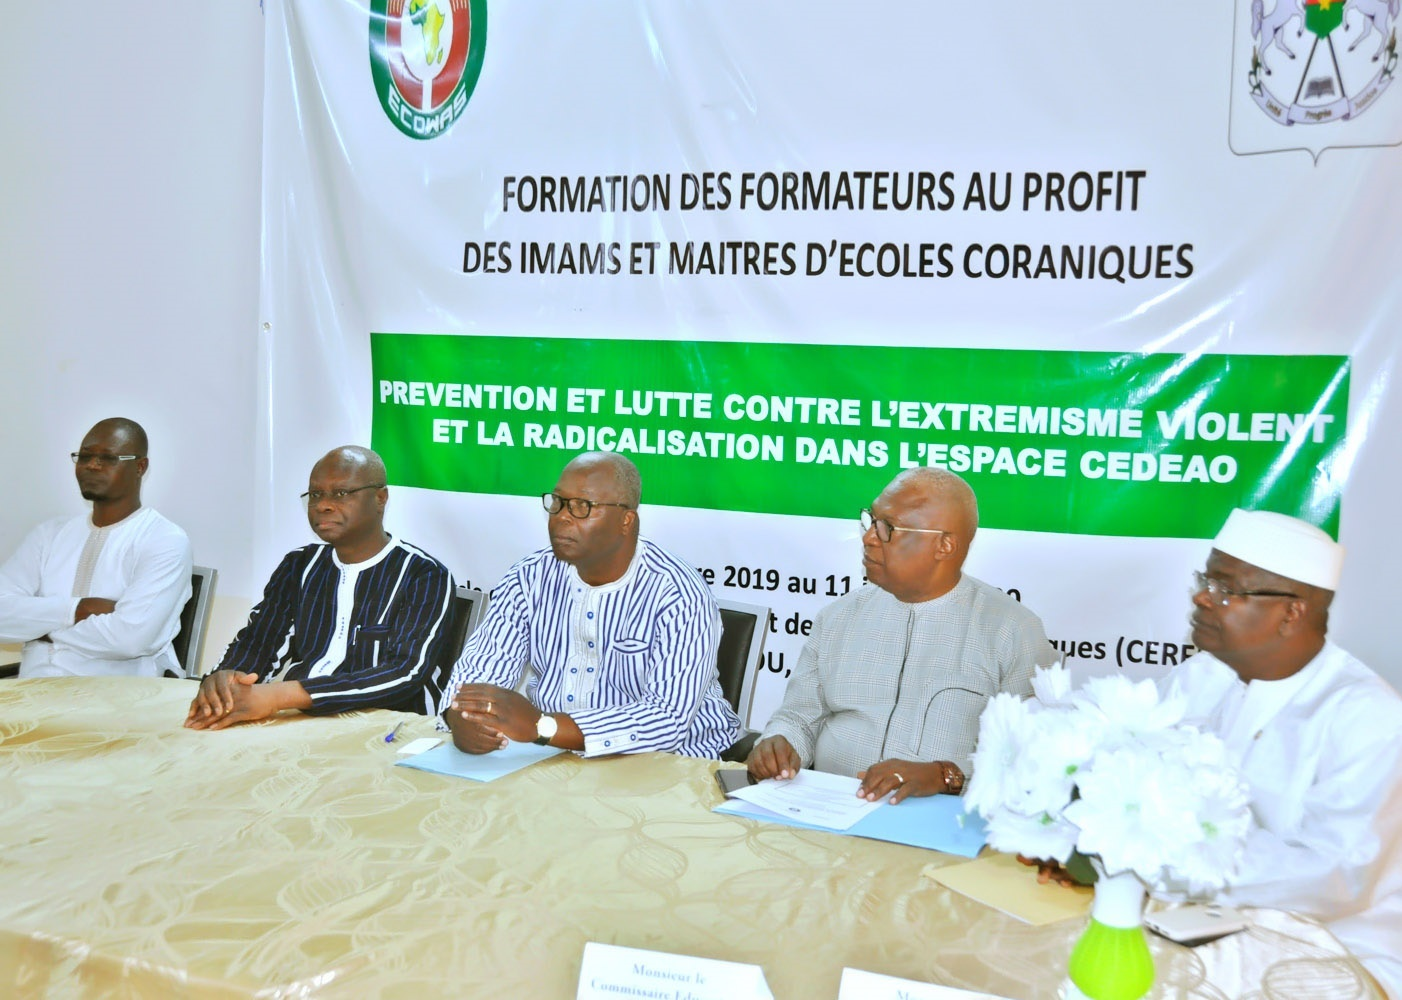 Ecowas Enhances The Skills Of Imams And Teachers Of Koranic Schools In Burkina Faso To Counter Violent Extremism And Radicalisation In West Africa Economic Community Of West African States Ecowas